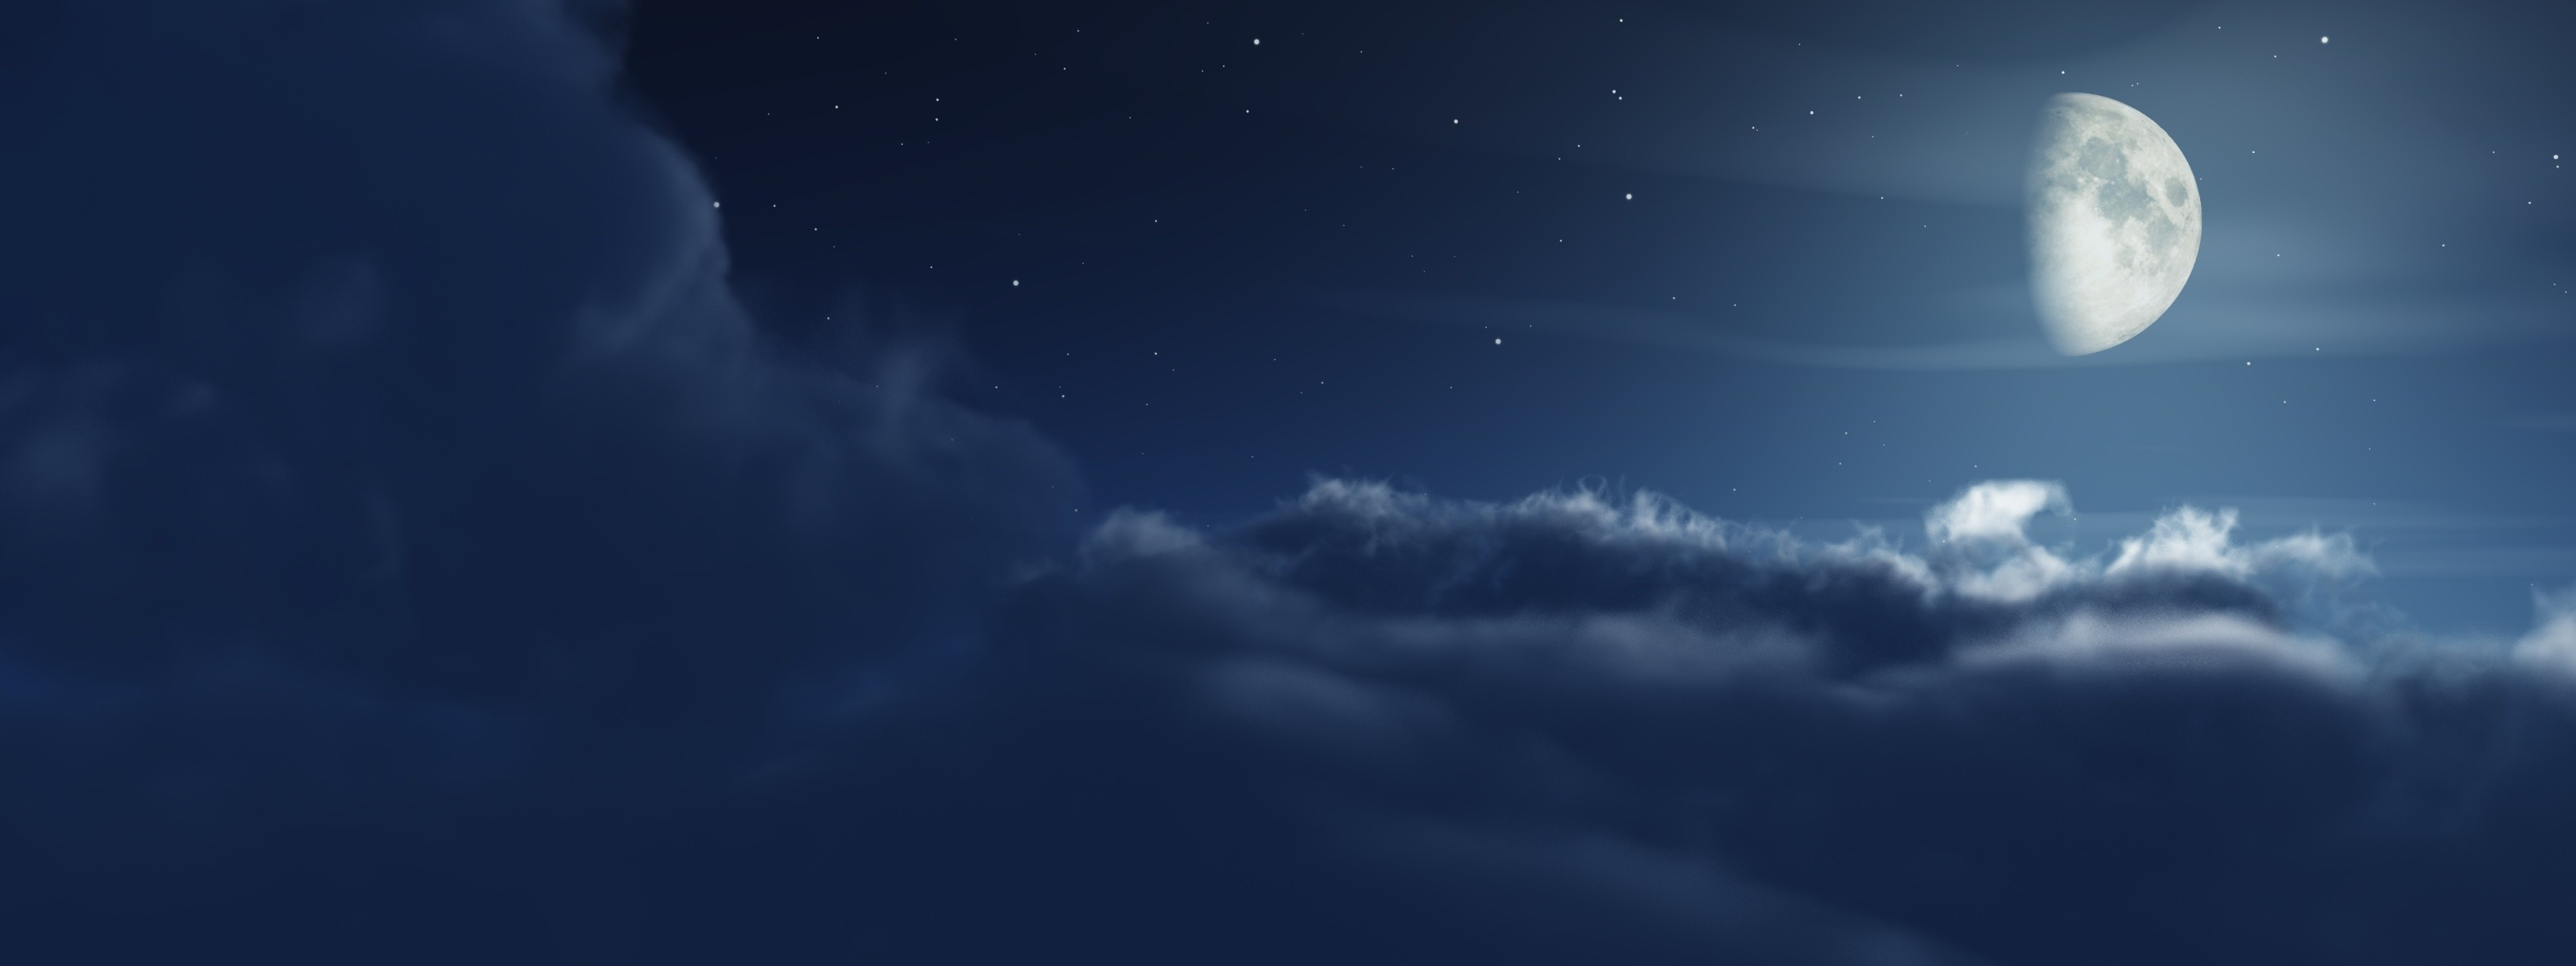 3200x1200 Multi Monitor Dual Screen night moon clouds stars wallpaper |  |  35036 | WallpaperUP